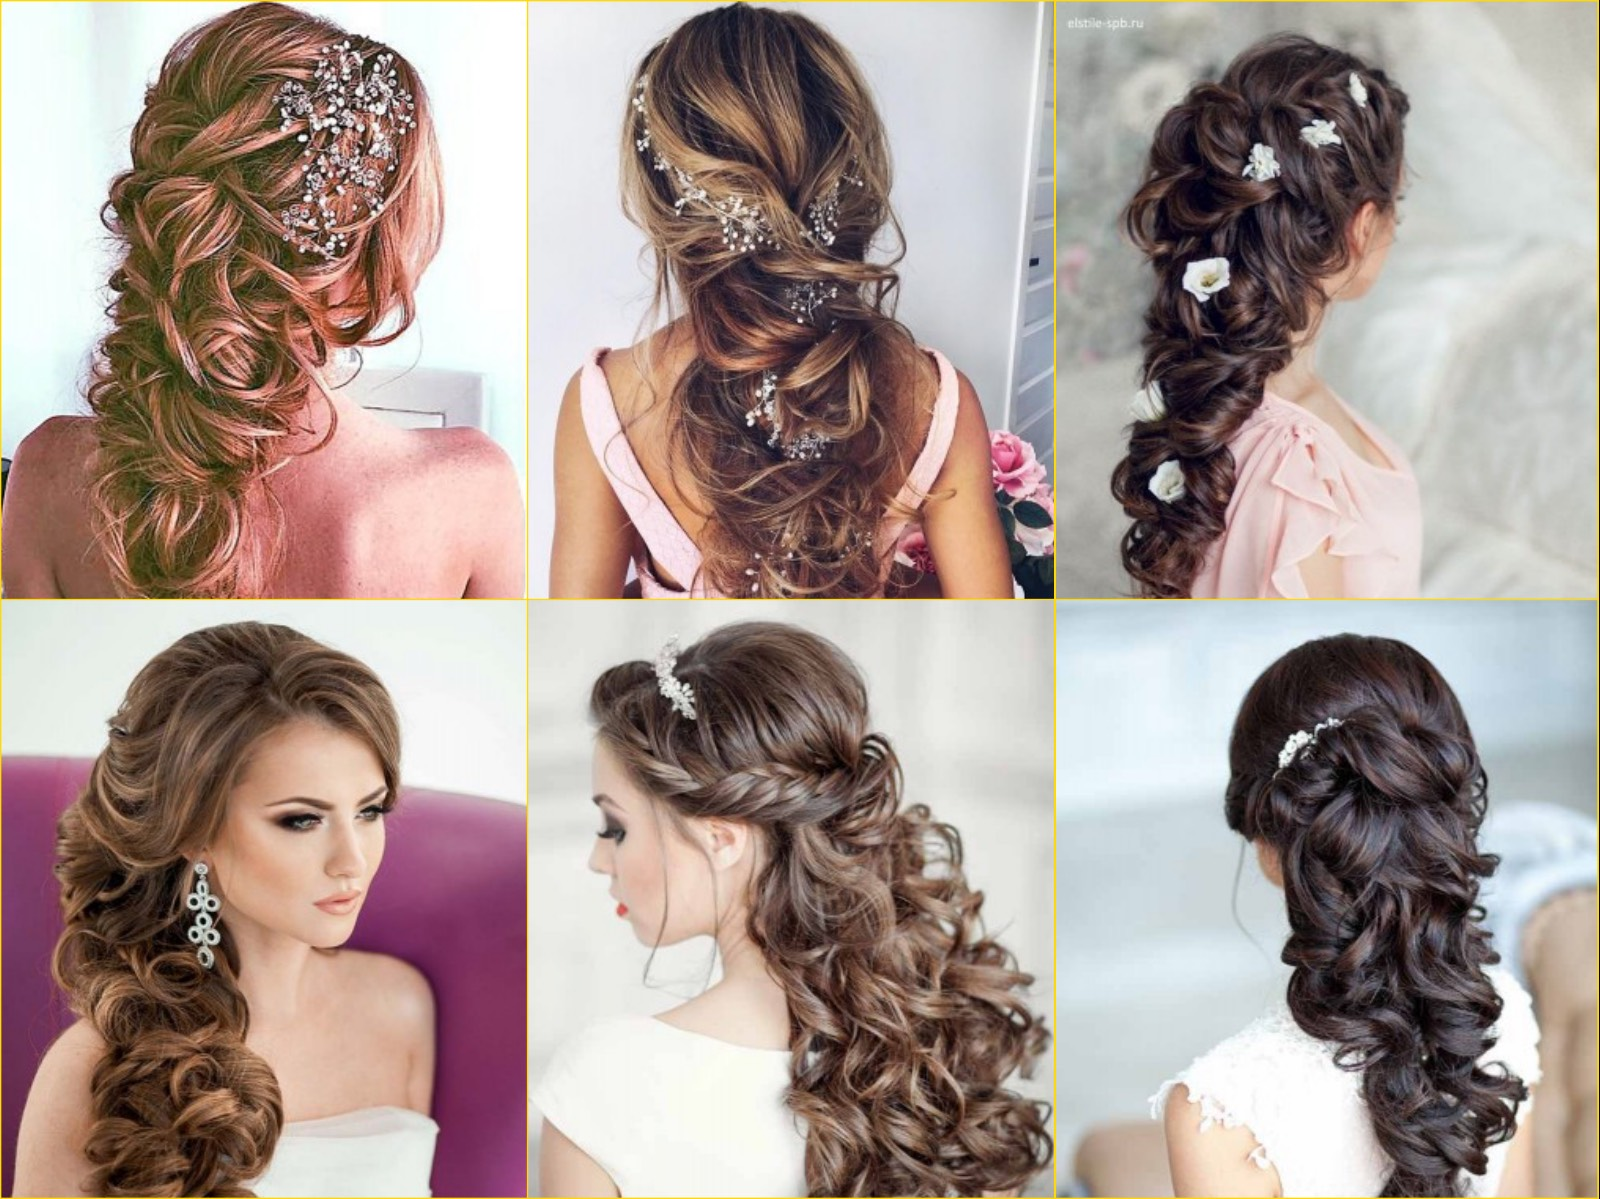 The 4 most desired hairstyles by bold brides photos the trent hairstyles brides bridal the trent urmus Gallery